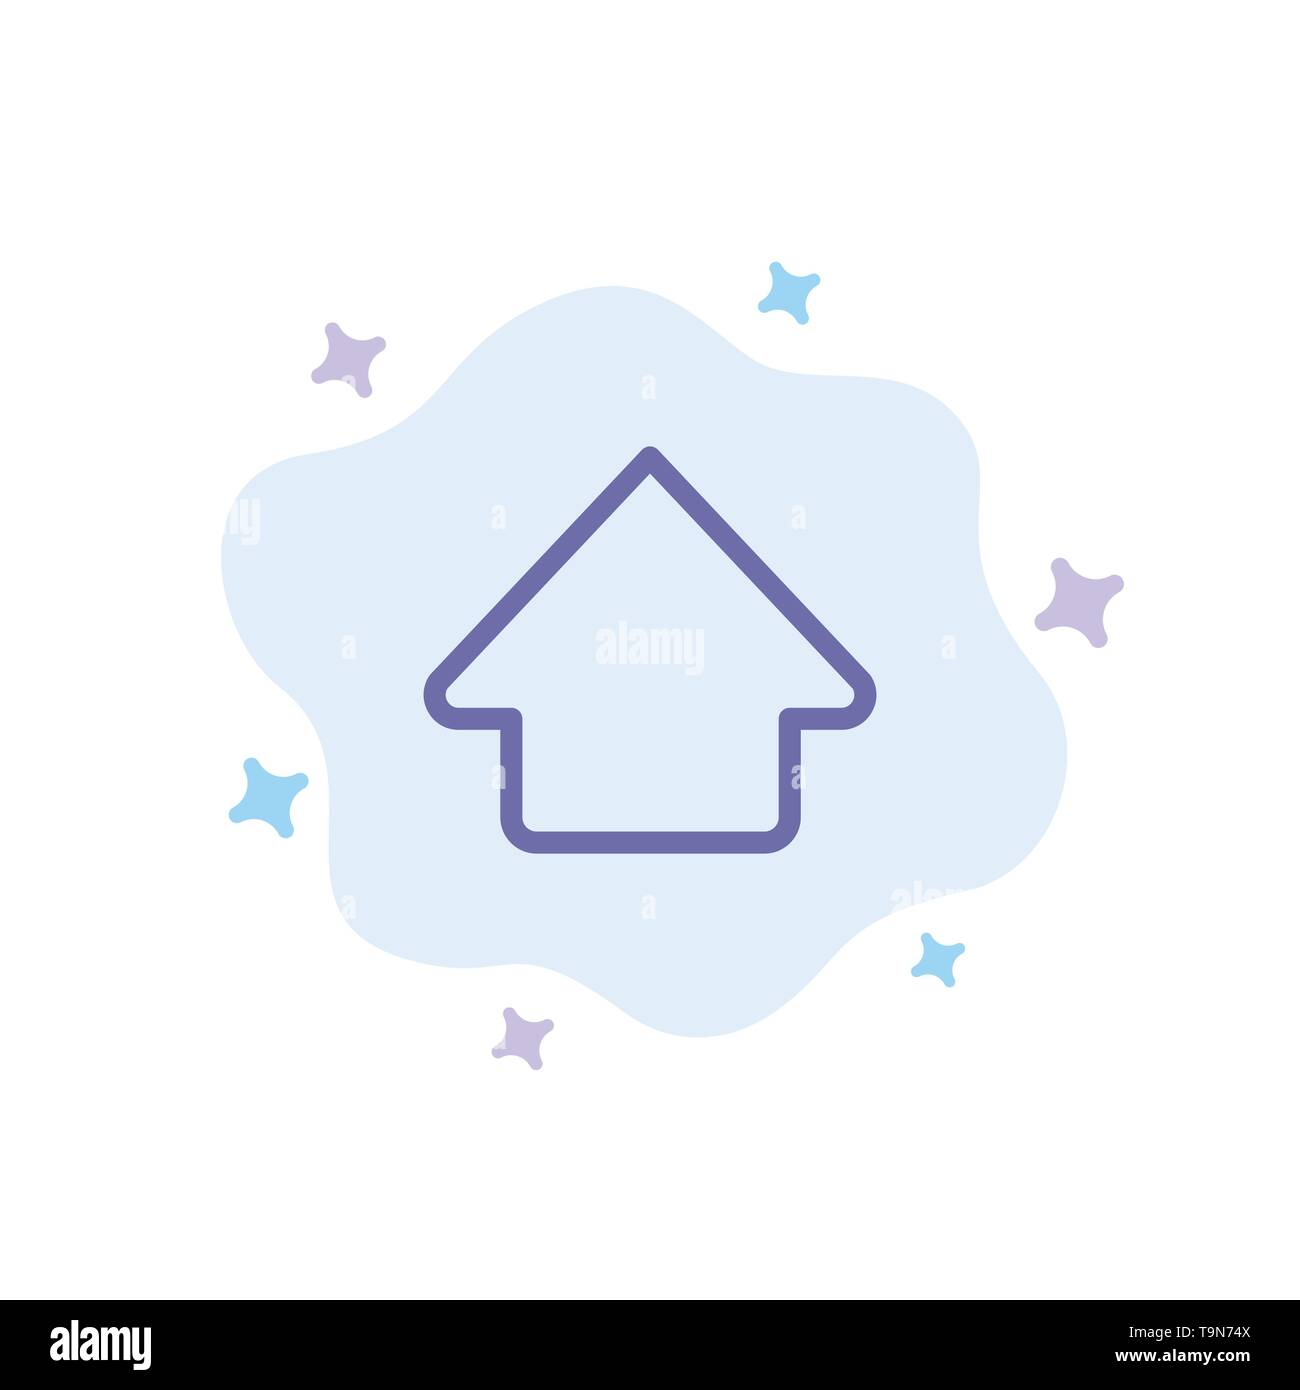 Arrow, Up, Upload Blue Icon on Abstract Cloud Background - Stock Image